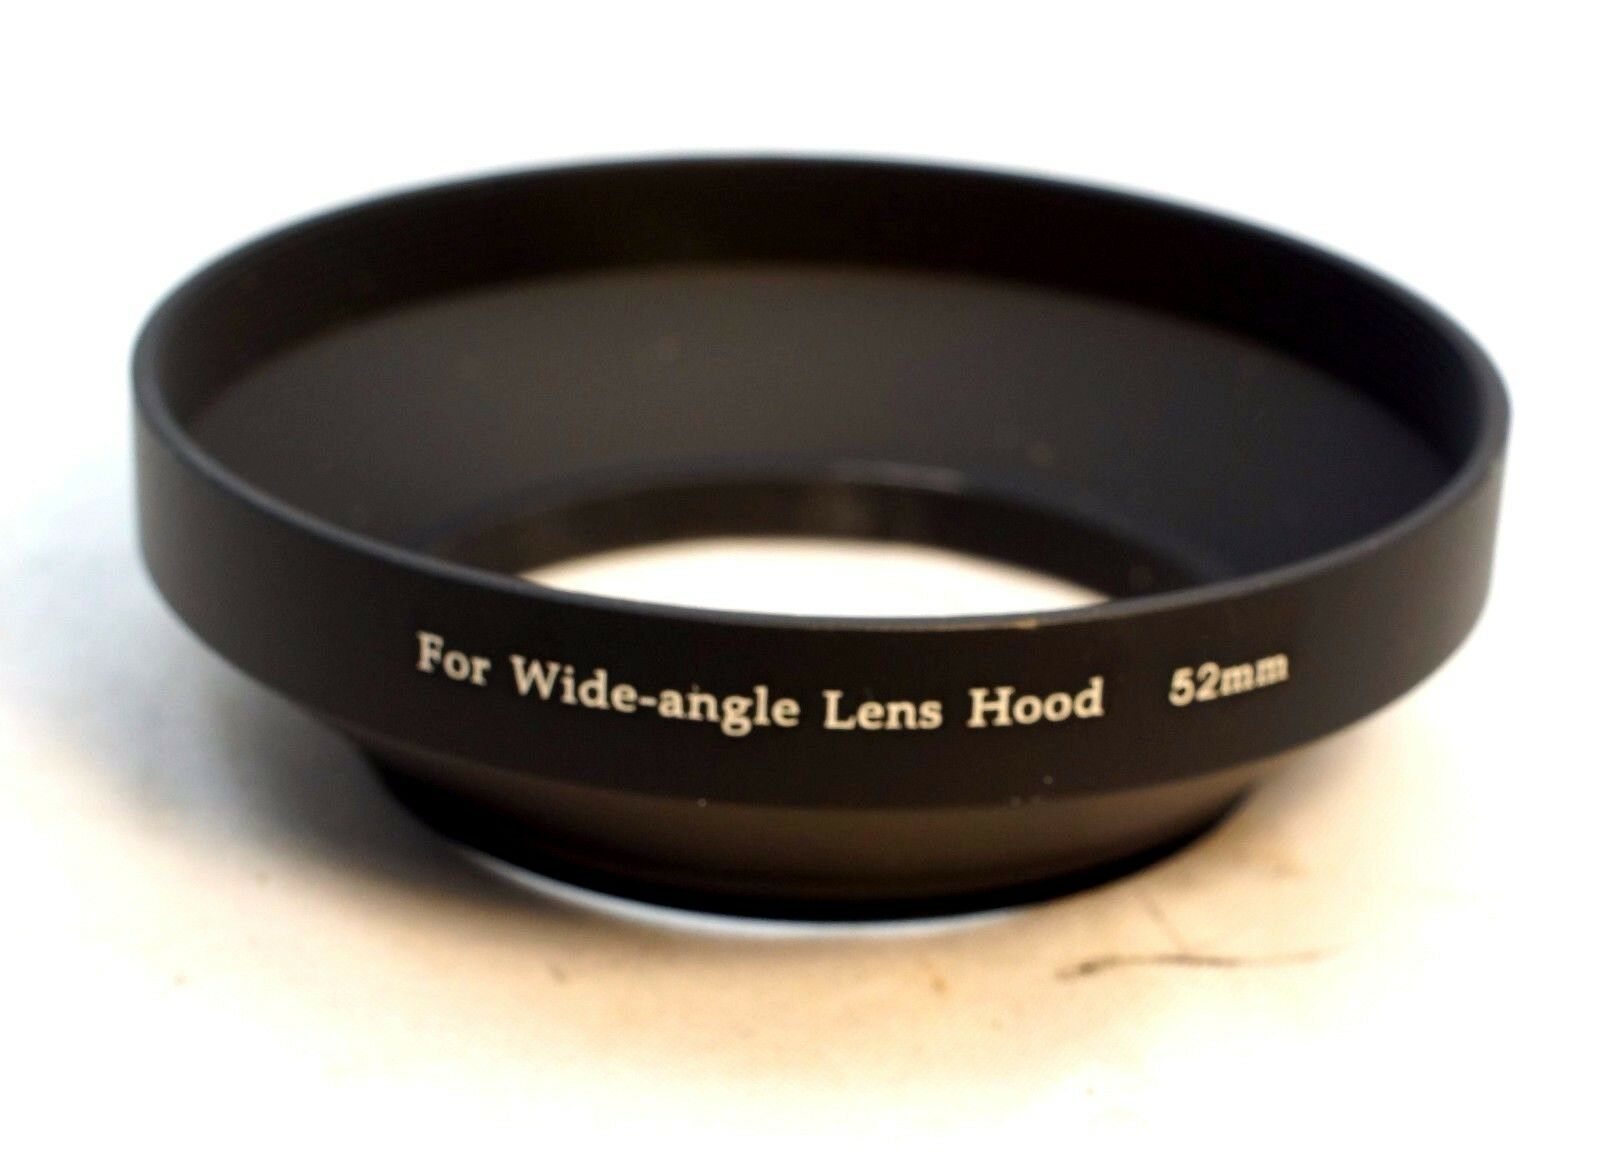 52mm Metal Lens Hood Lenses Screw In Type Wide Angle For 28mm F28 Cameras Mount 35mm 1 Of 8